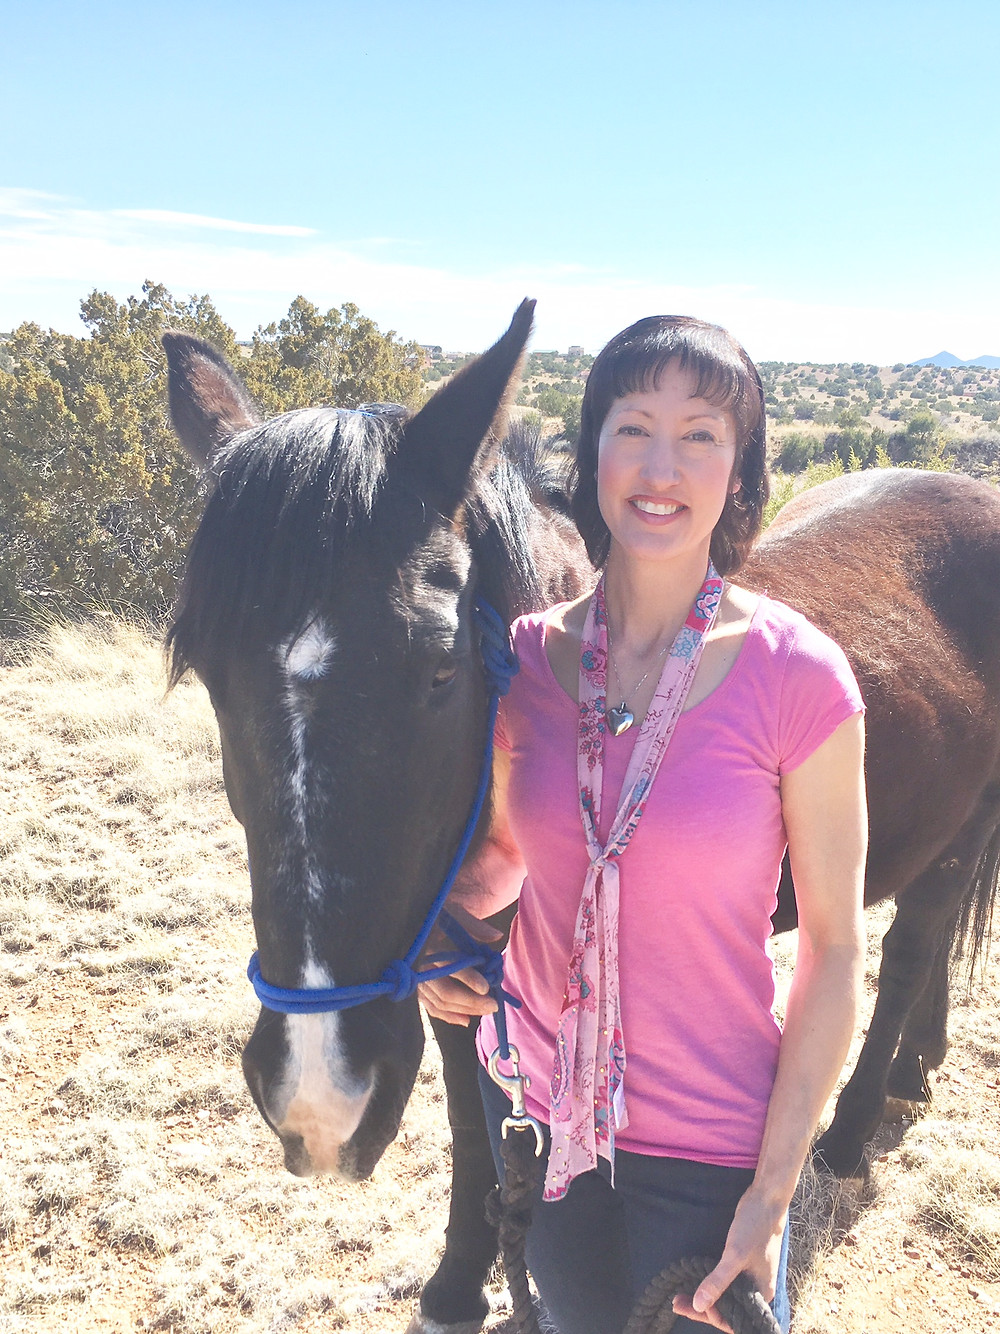 Jade helps with Intuitive Healing Training Certification, Empath Support in Santa Fe, NM, US